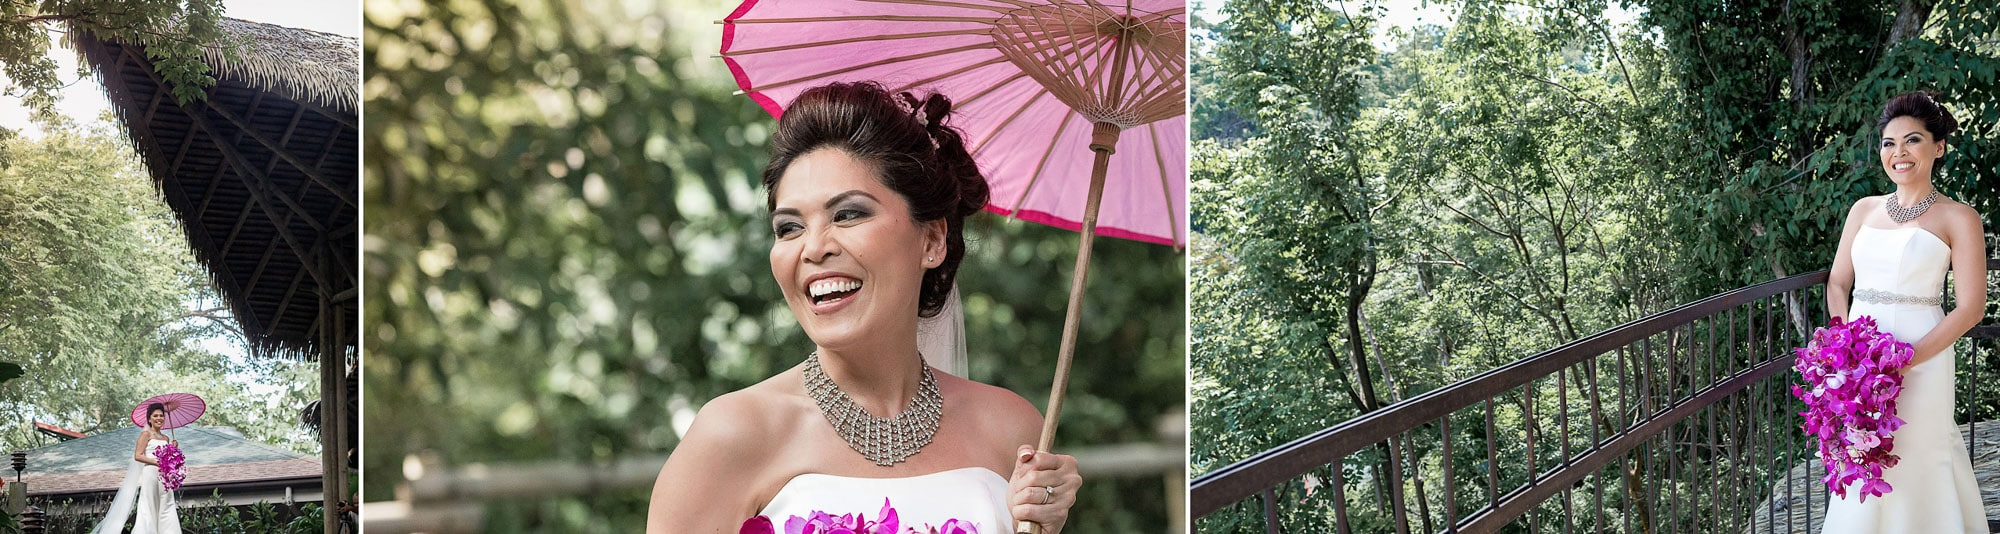 Shots of the lovely bride around the grounds at Arenas del Mar